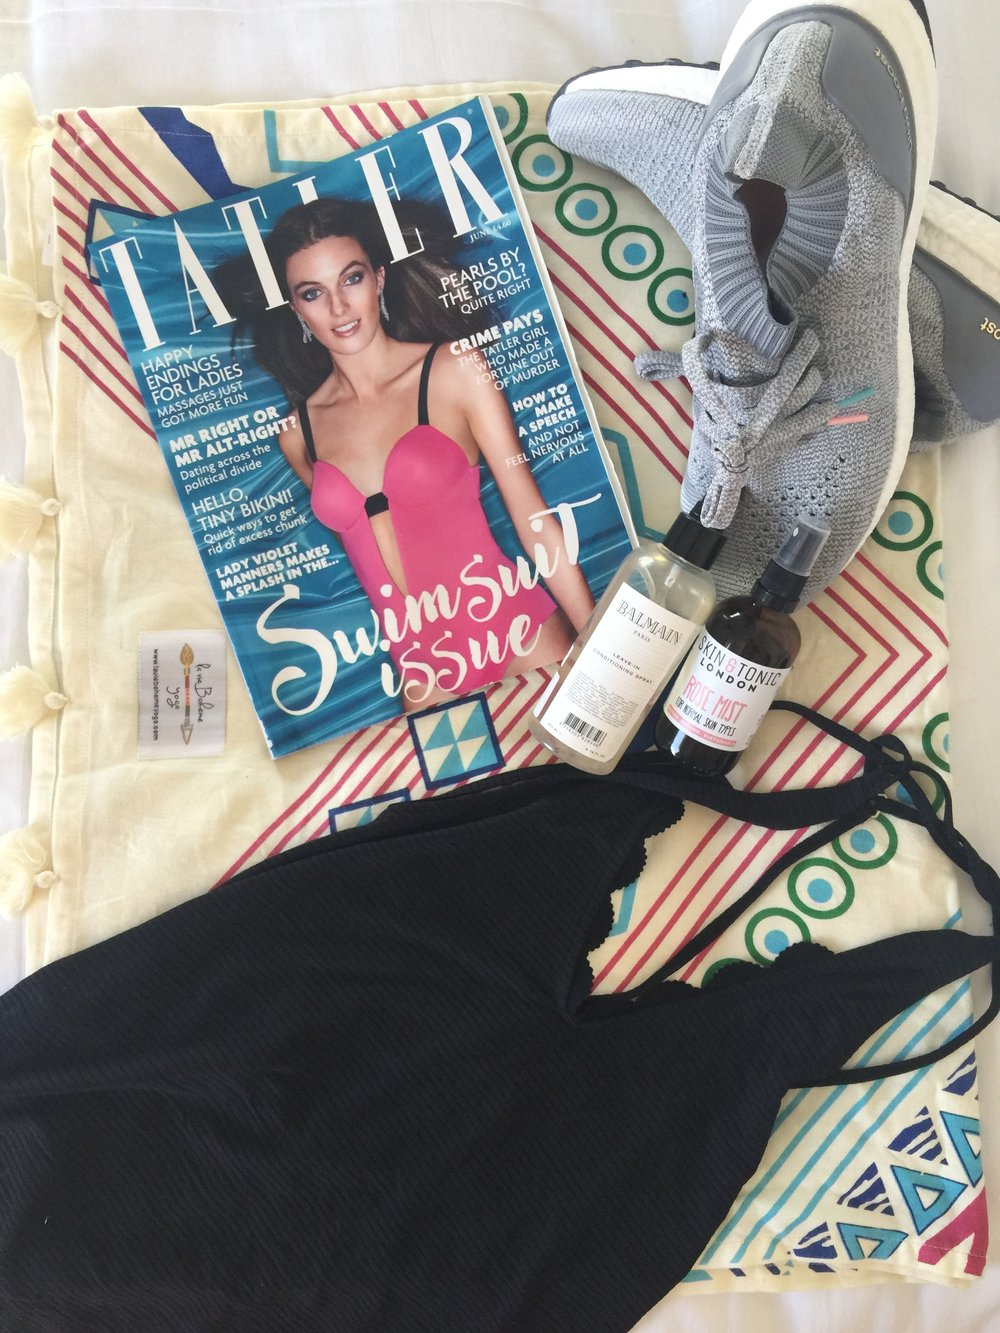 Holiday Essentials - Reading MaterialAdidas Boast TrainersSkin & Tonic Rose WaterBalmain Leave in Hair ConditionerTravel Yoga MatFashercise Gym Kit (variety)